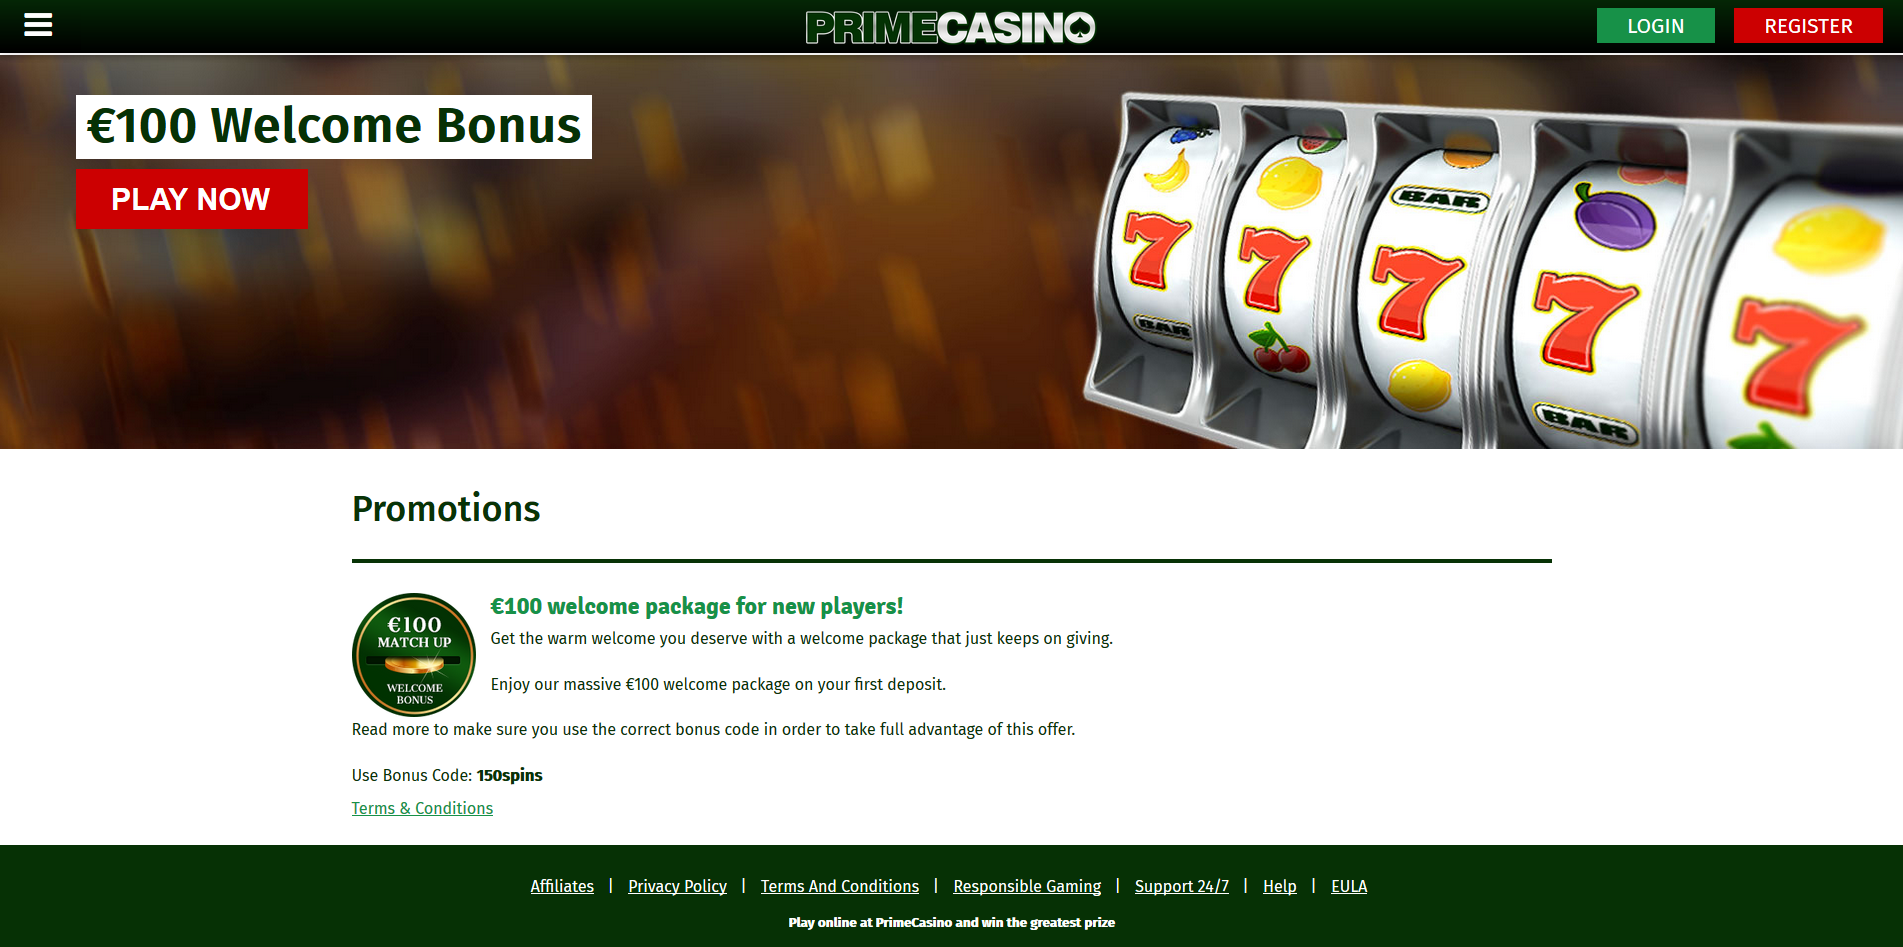 Prime casino com st charles missouri hotels near casino